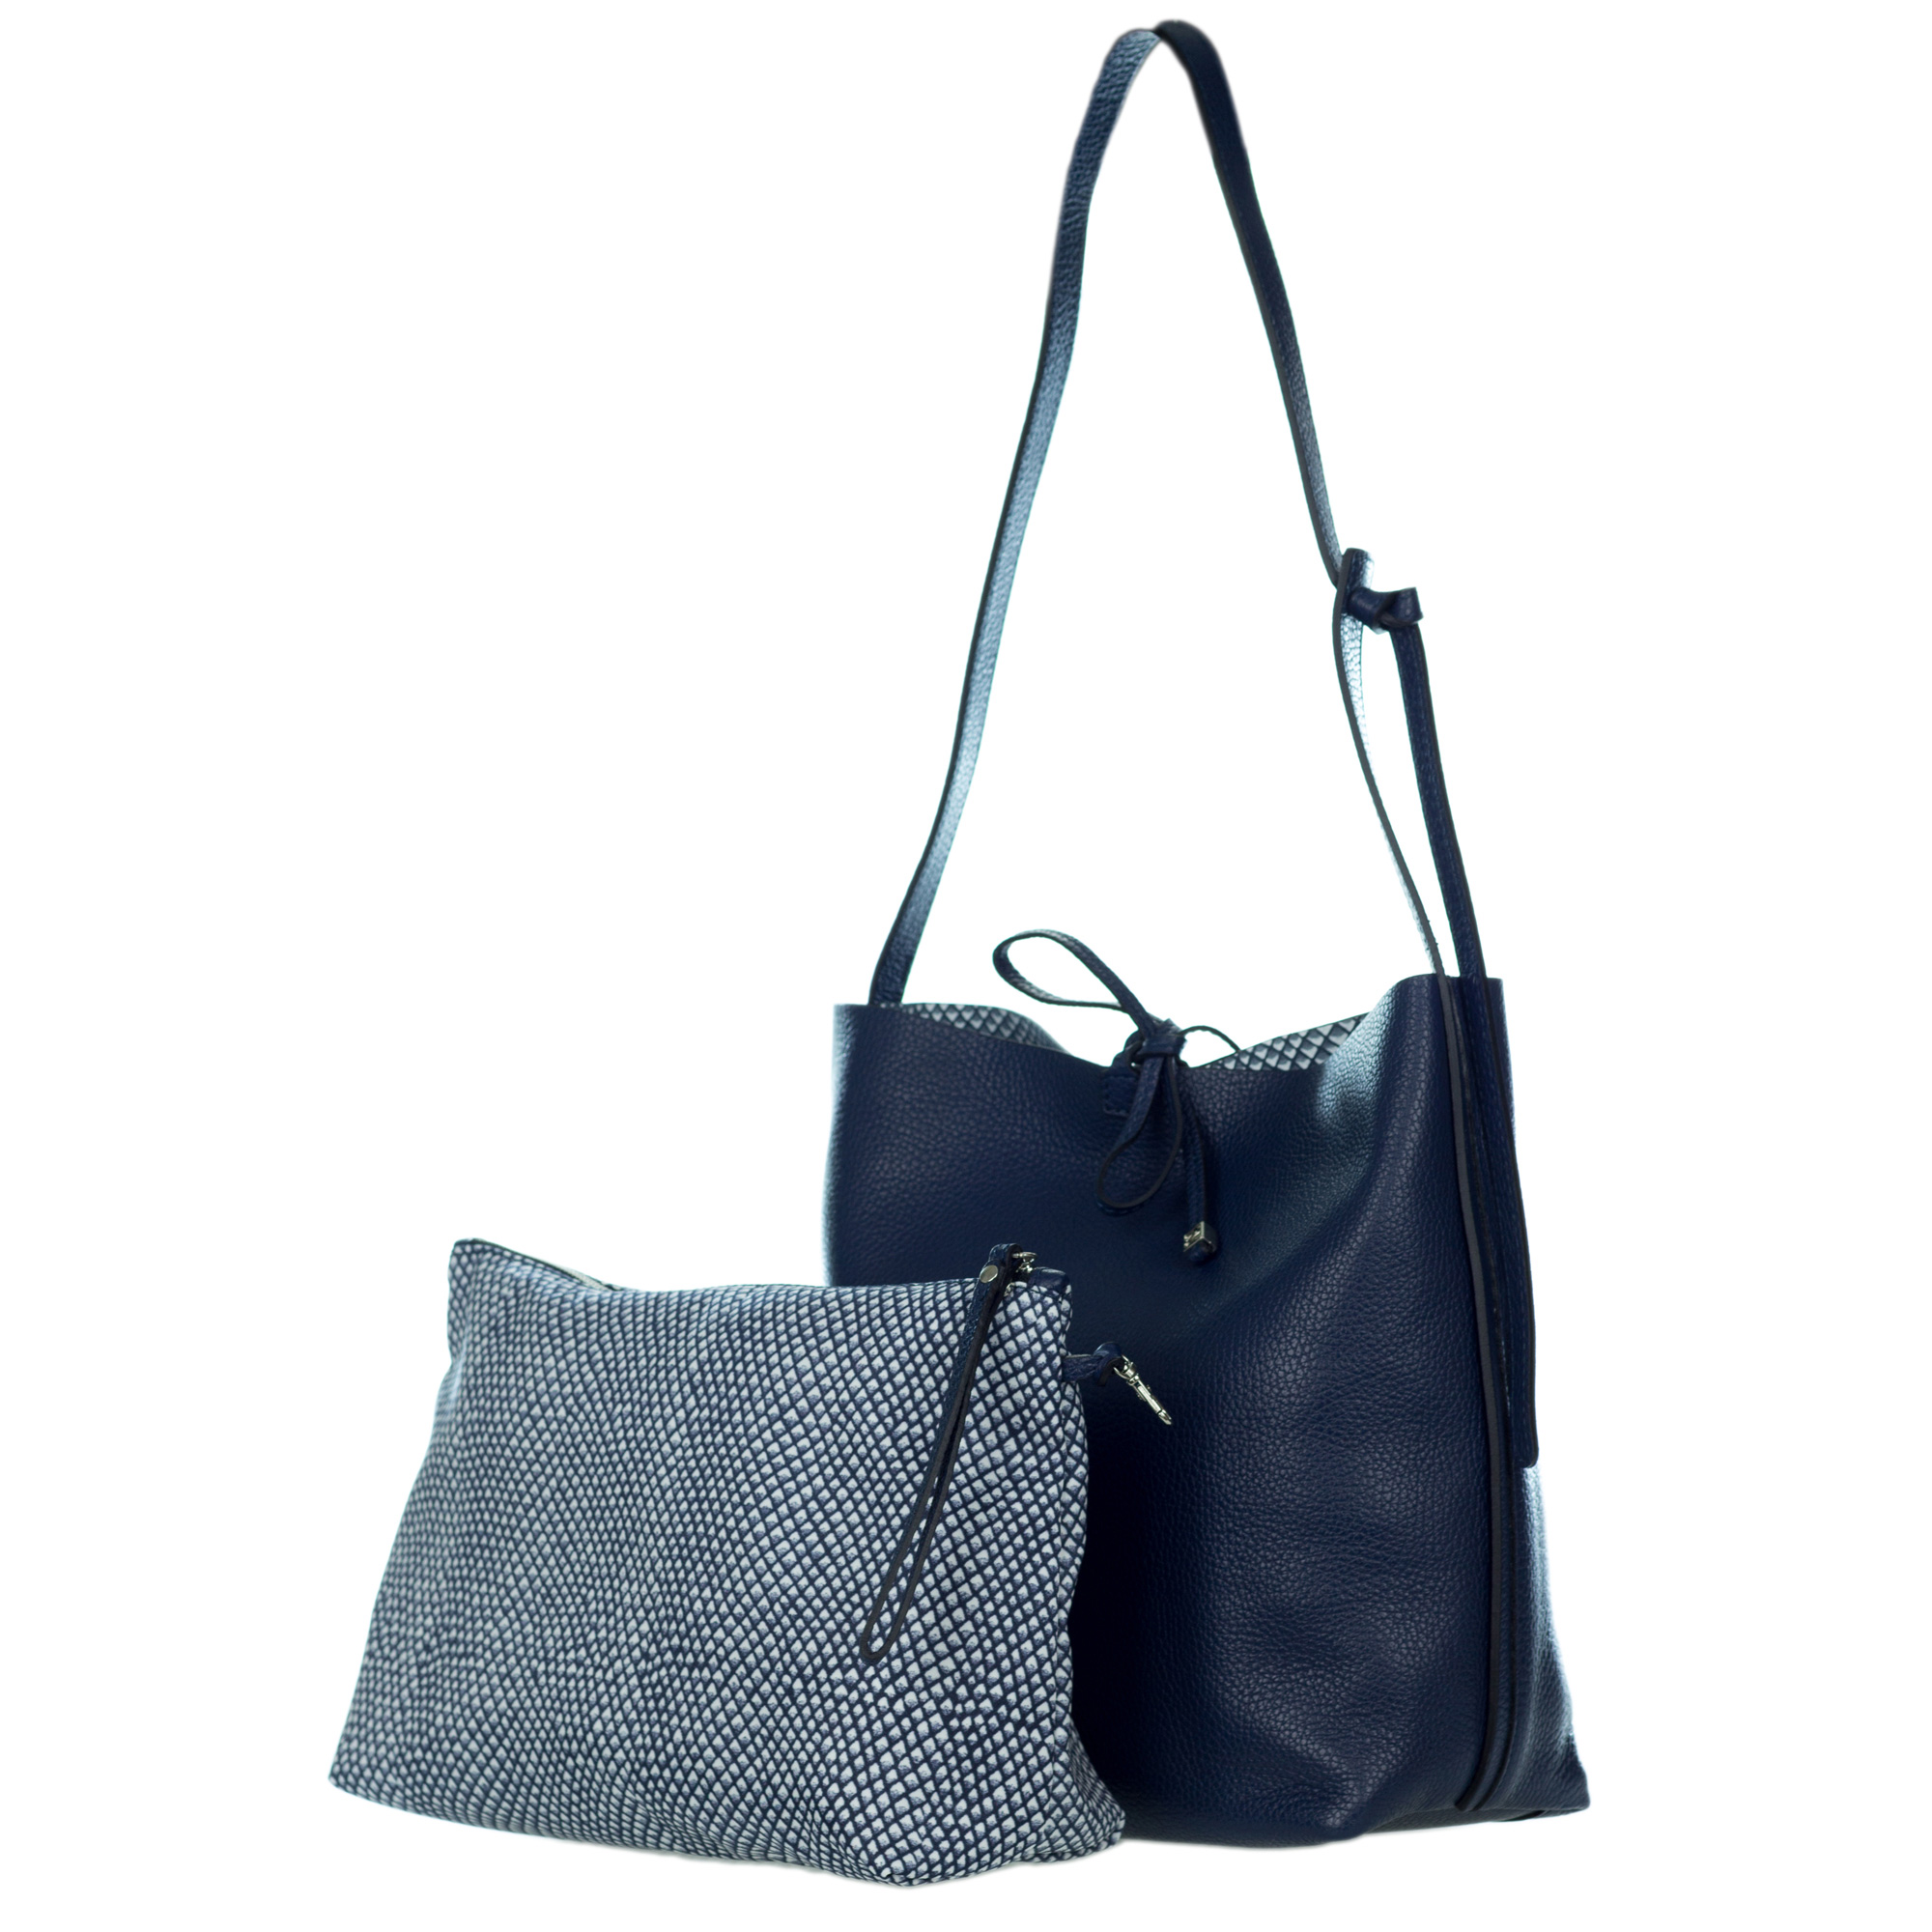 125c72ded8d Gianni Chiarini Italian Made Navy Blue Pebbled Leather Slouchy Open Top  Shoulder Bag. Hover to zoom